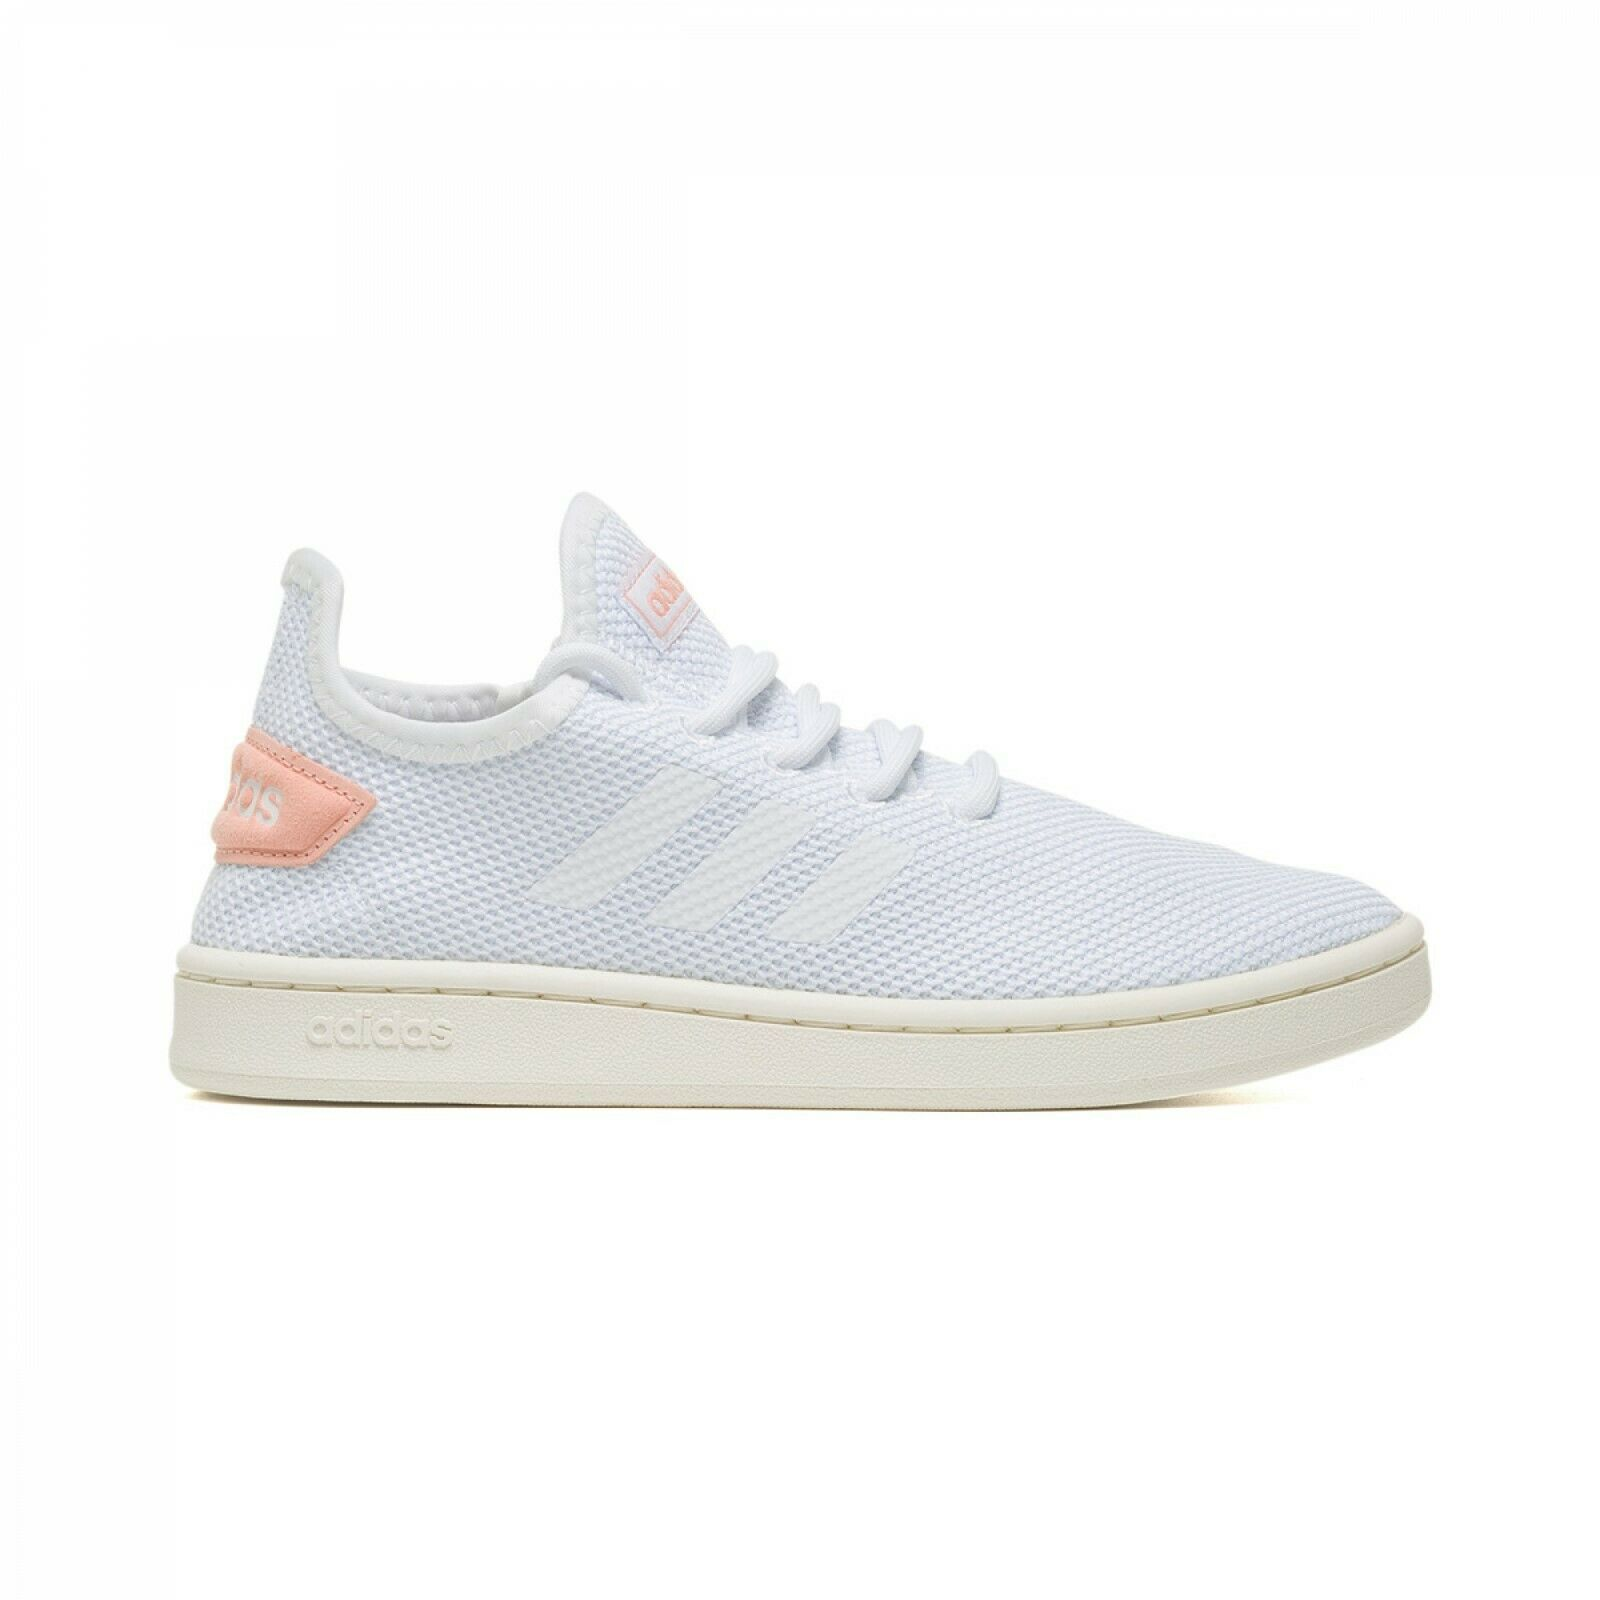 SCARPE ADIDAS DONNA COURT ADAPT F36476 WHITE BIANCO ROSA PINK TENNIS SPORTIVE